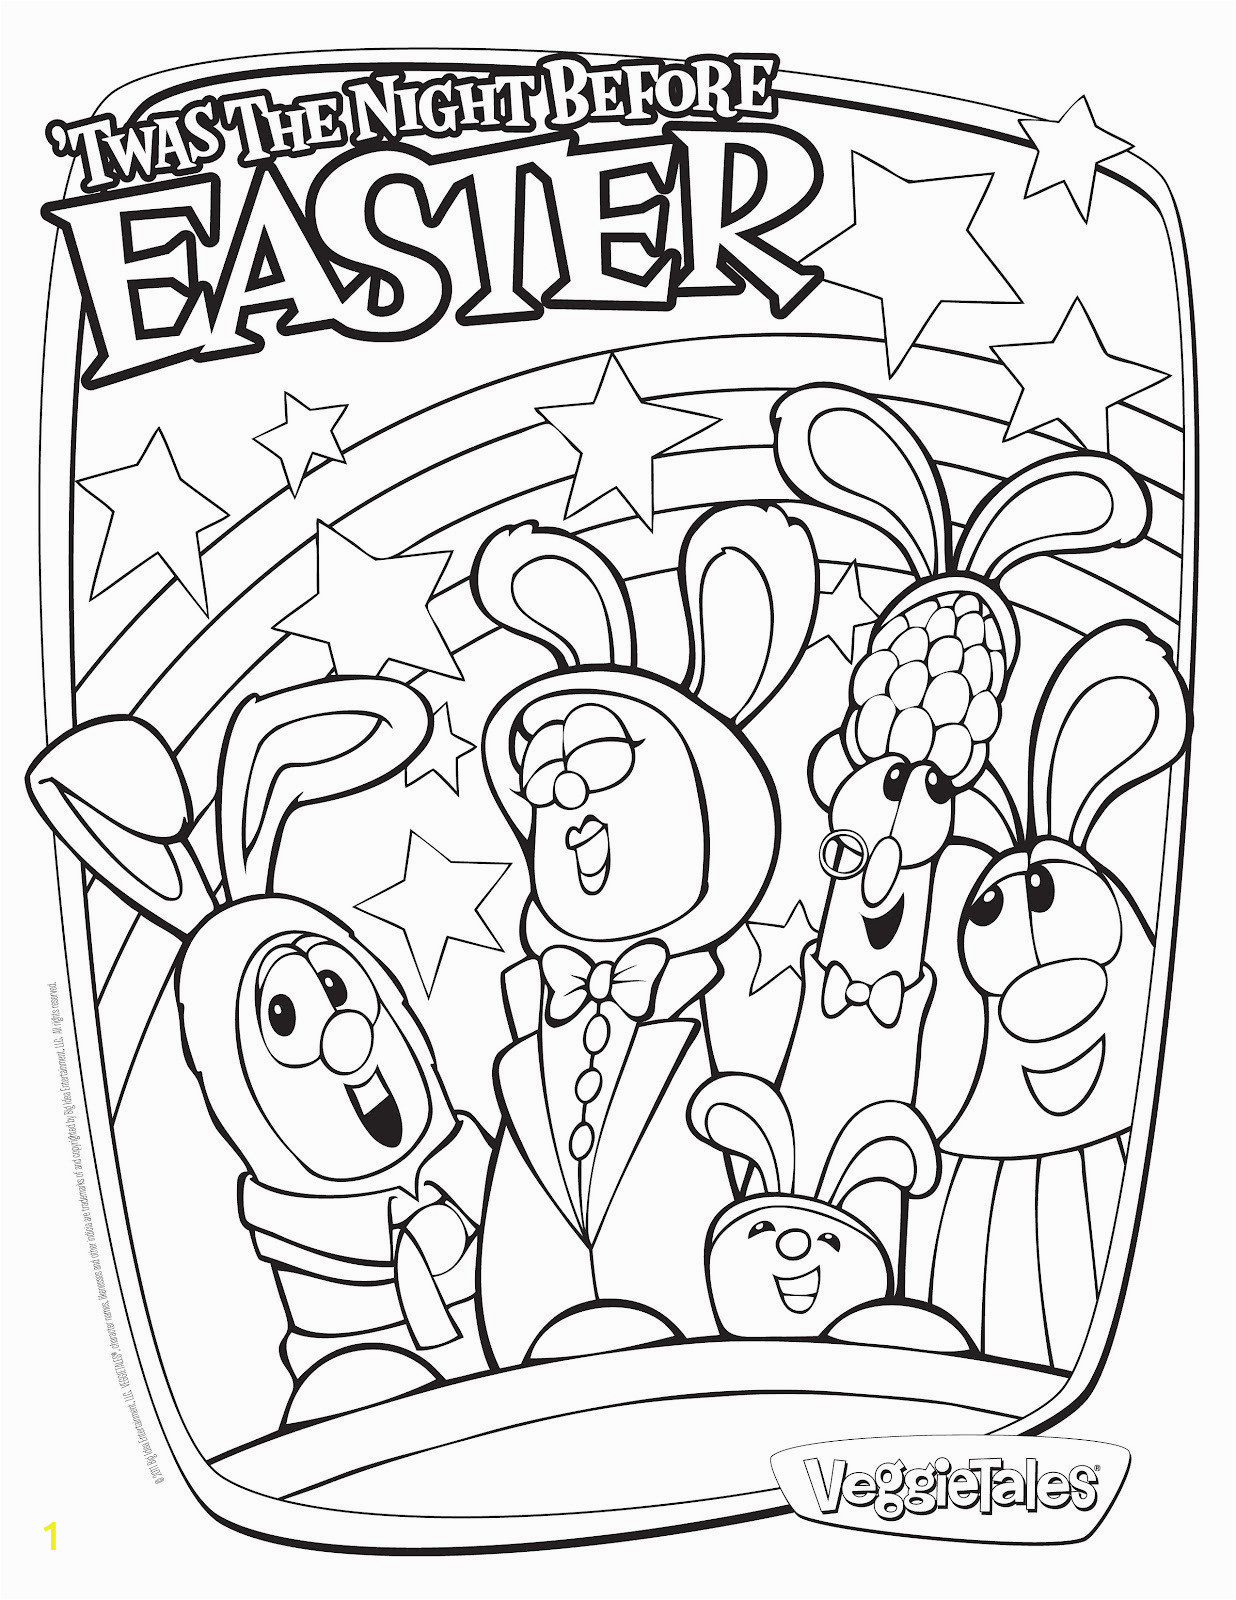 free biblering pages to print awesome beautiful od dog of samuel bible coloring books for kids unique color outs pages